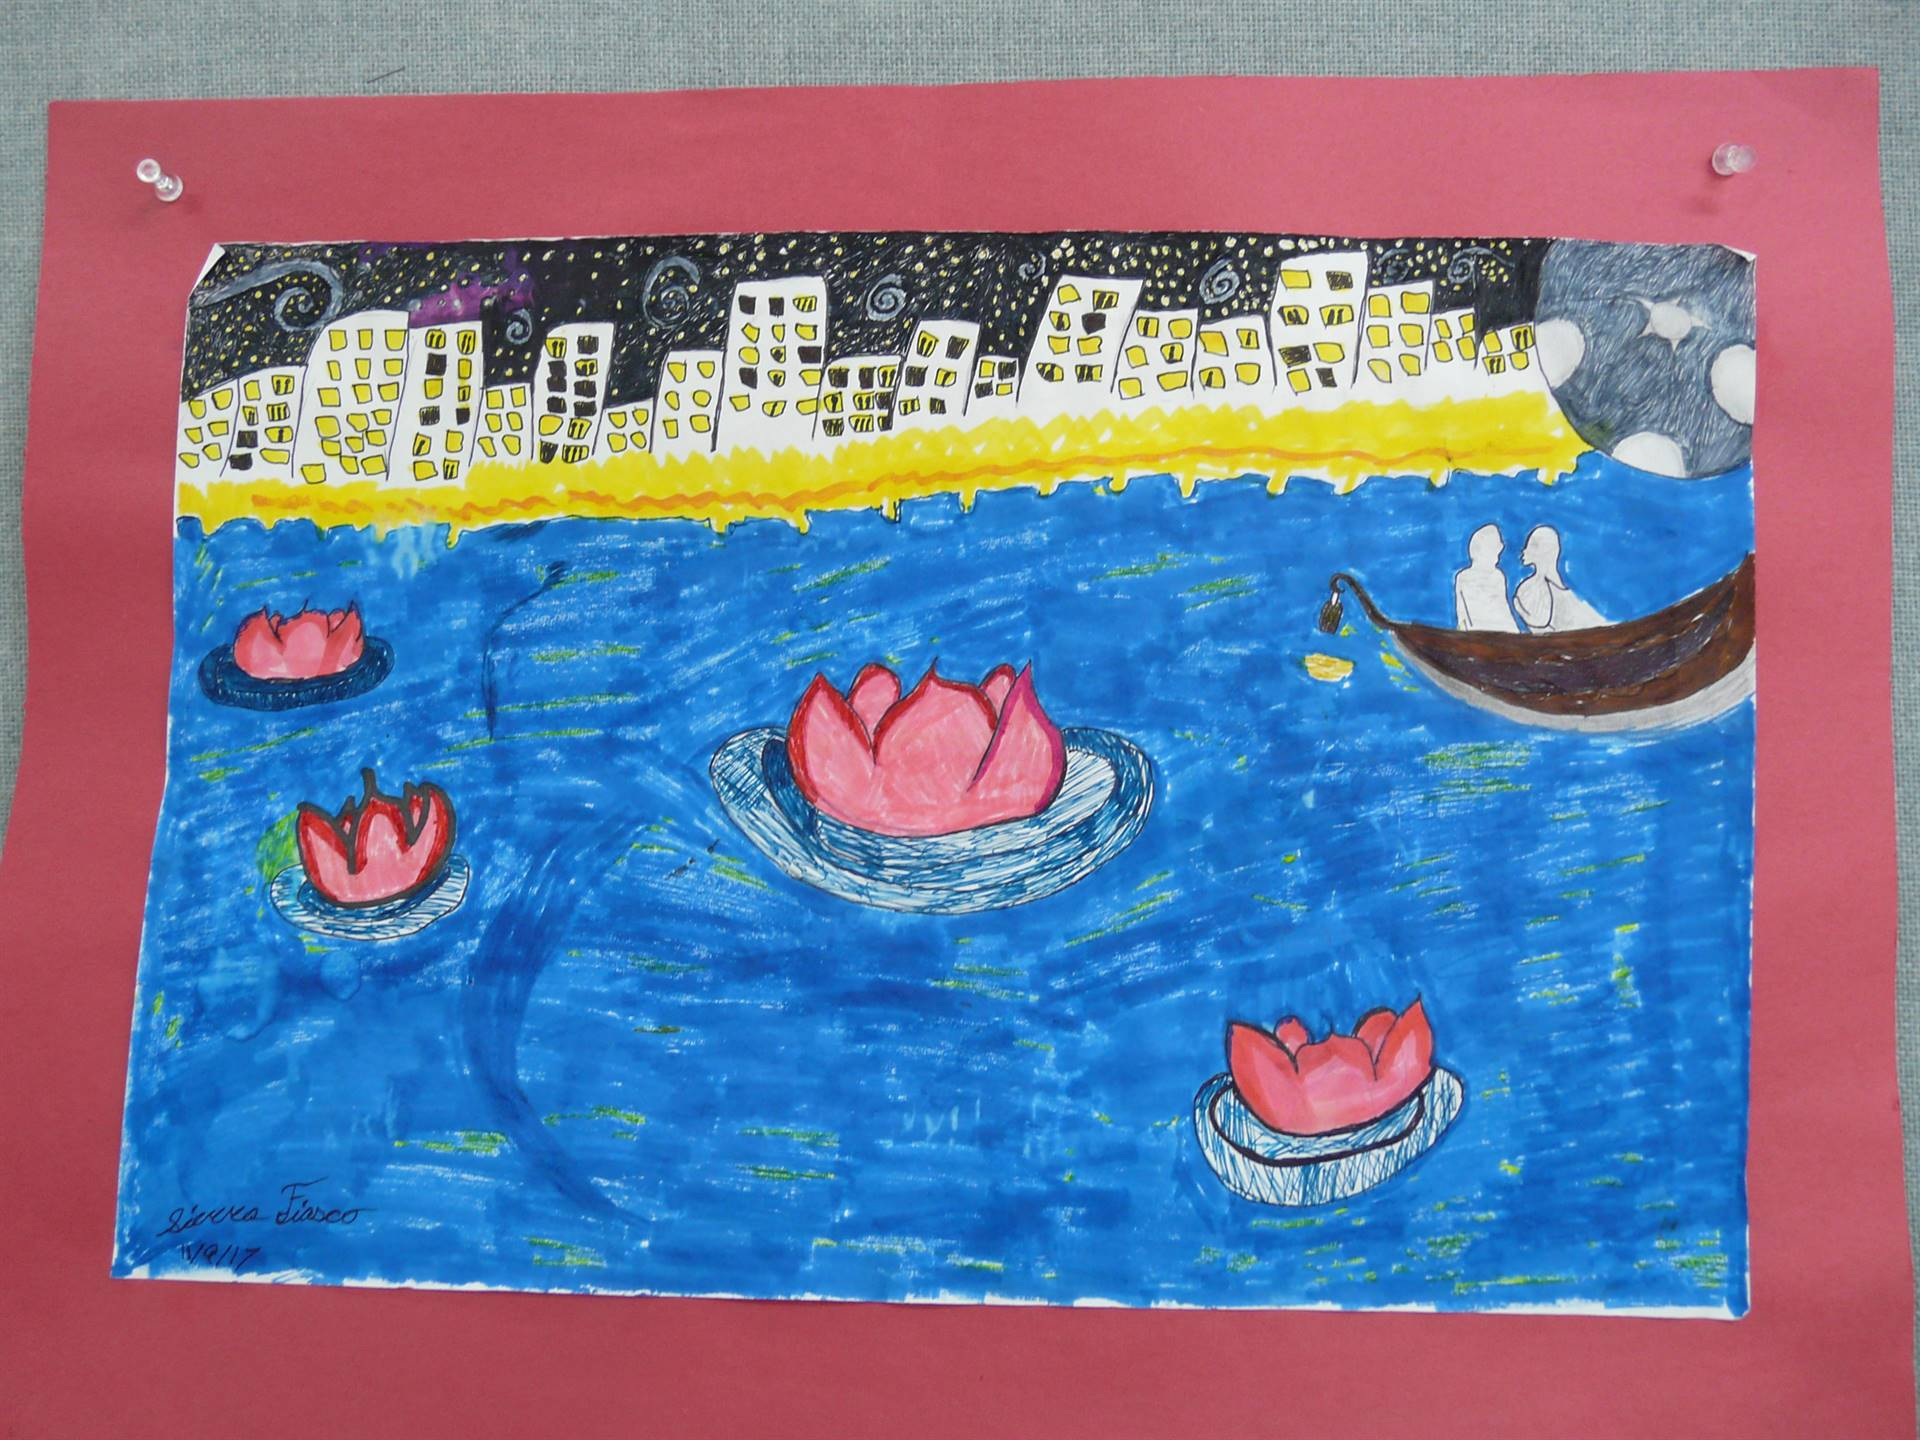 picture of city buildings, water, water lilies and a boat with 2 people in it